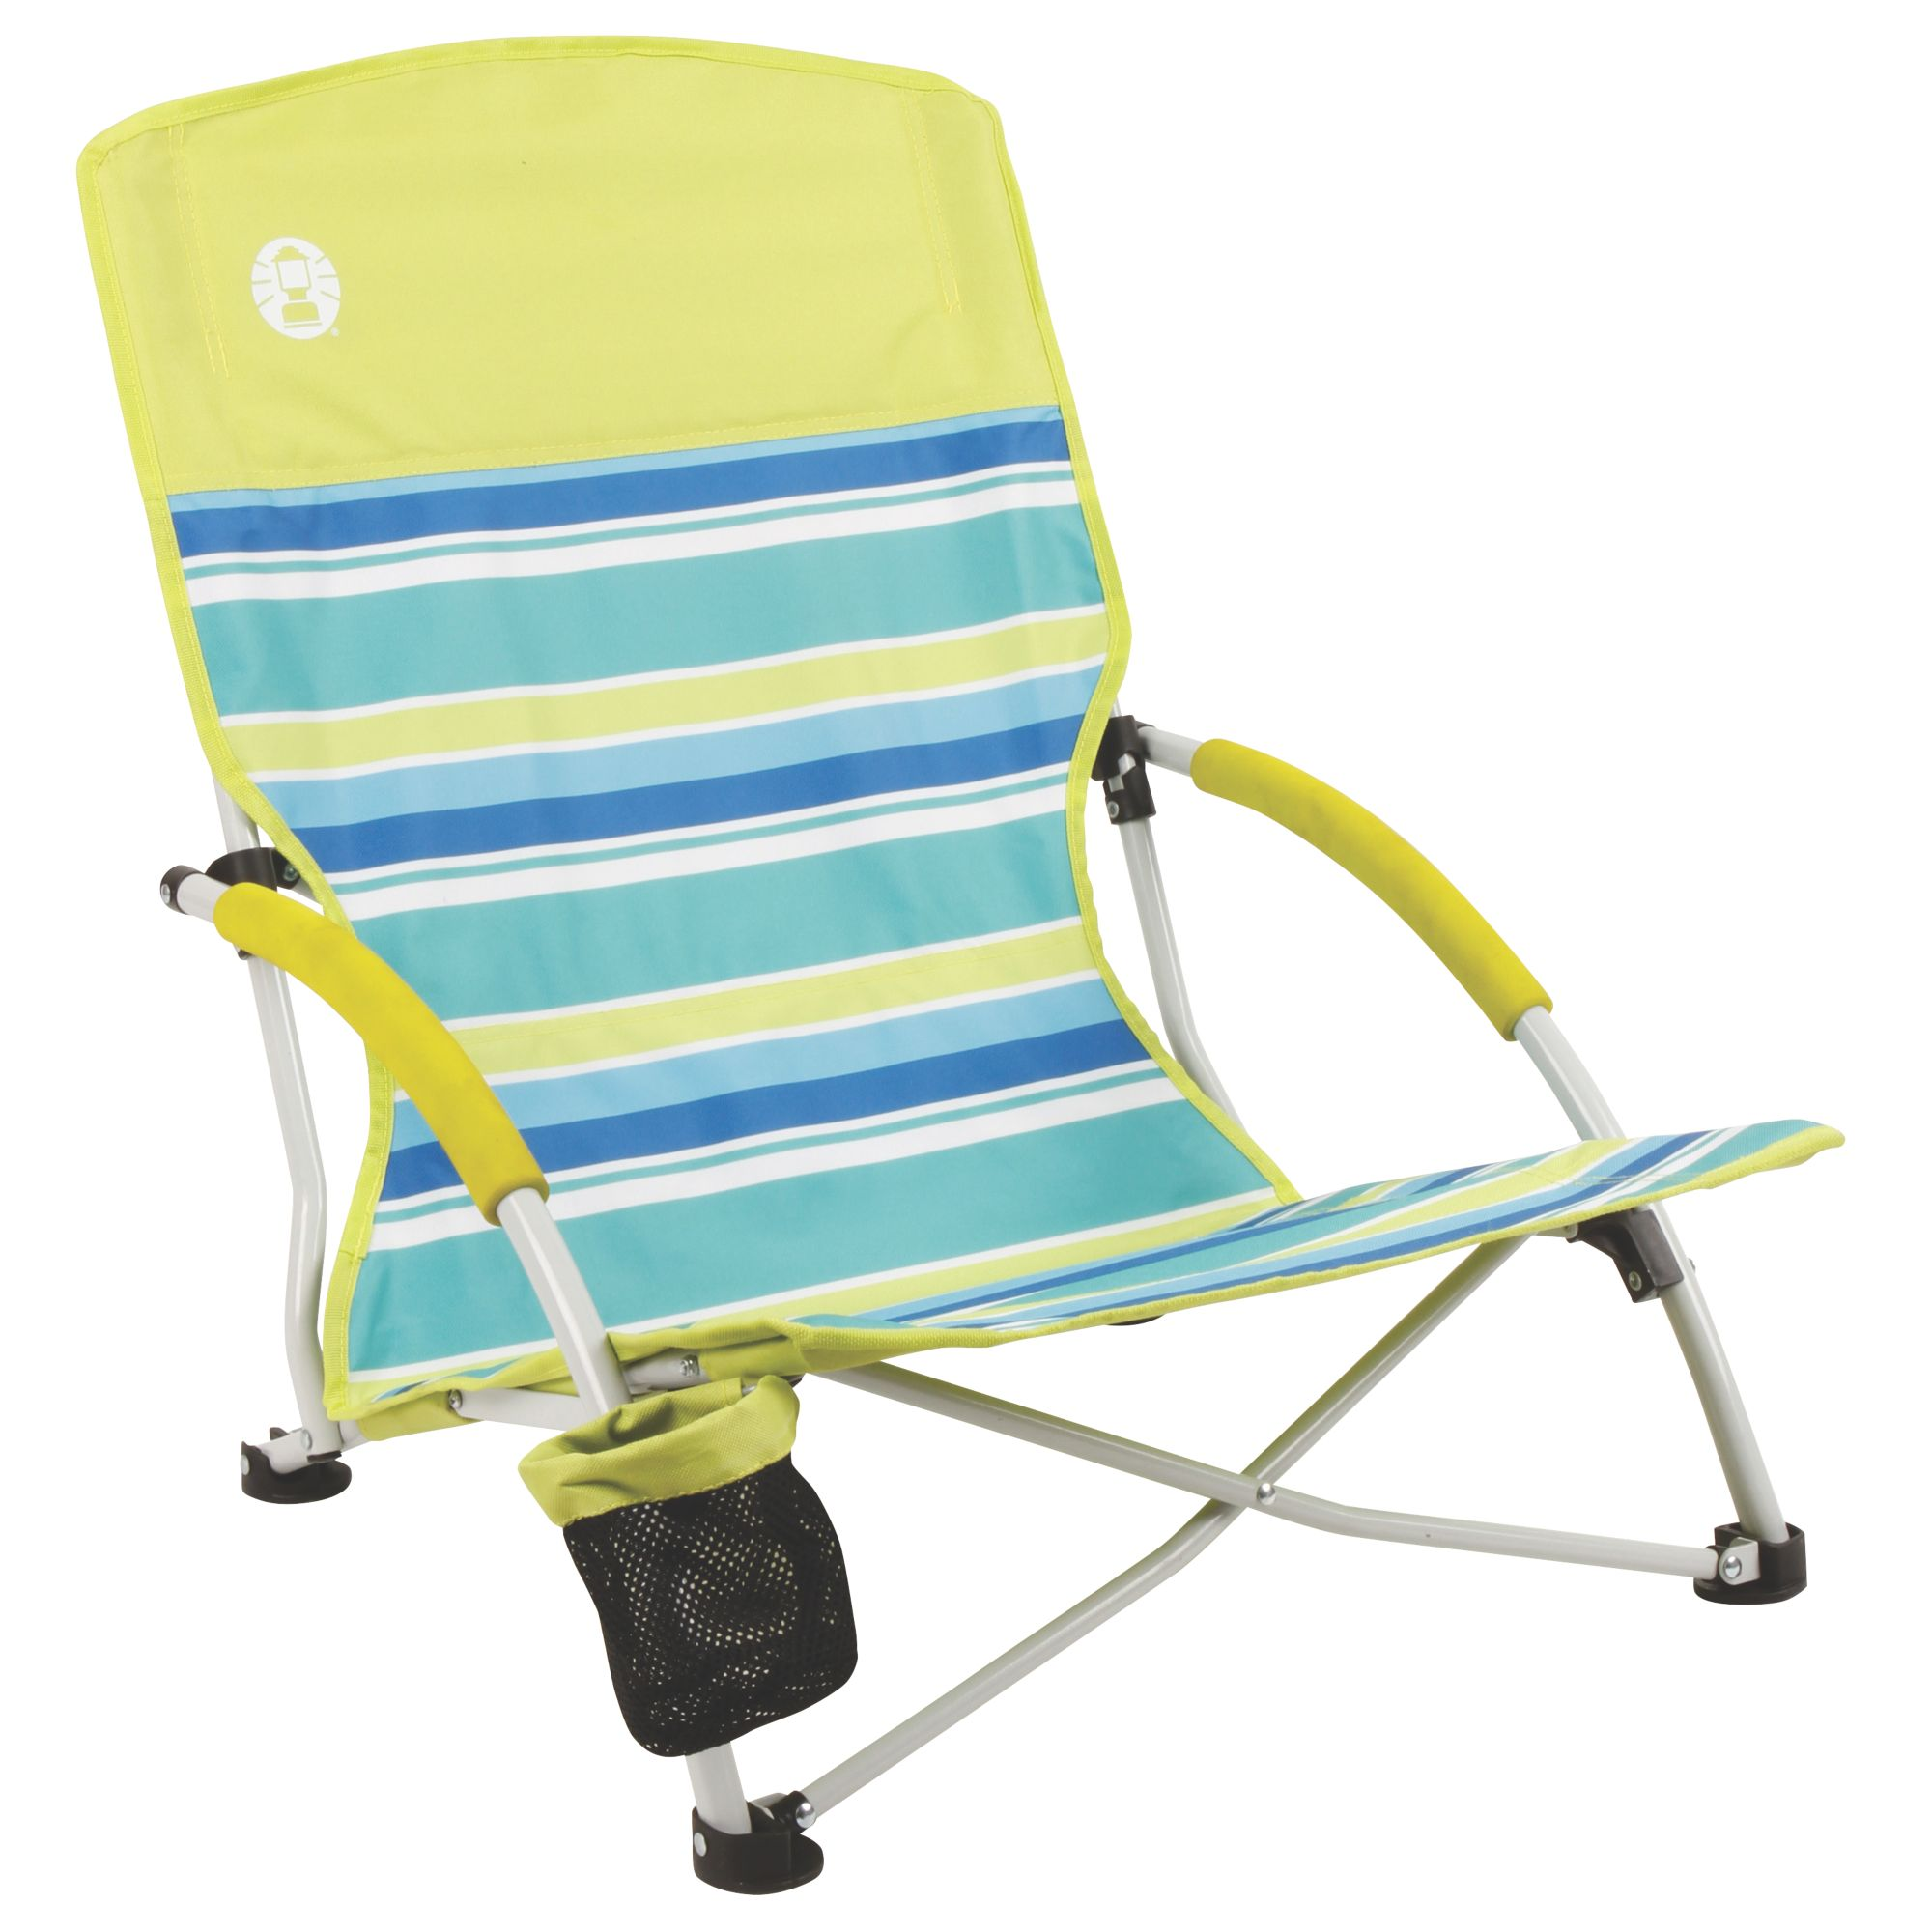 limited cape surfside company cod blue edition recliner chairs collections stripe beach chair fullsizeoutput